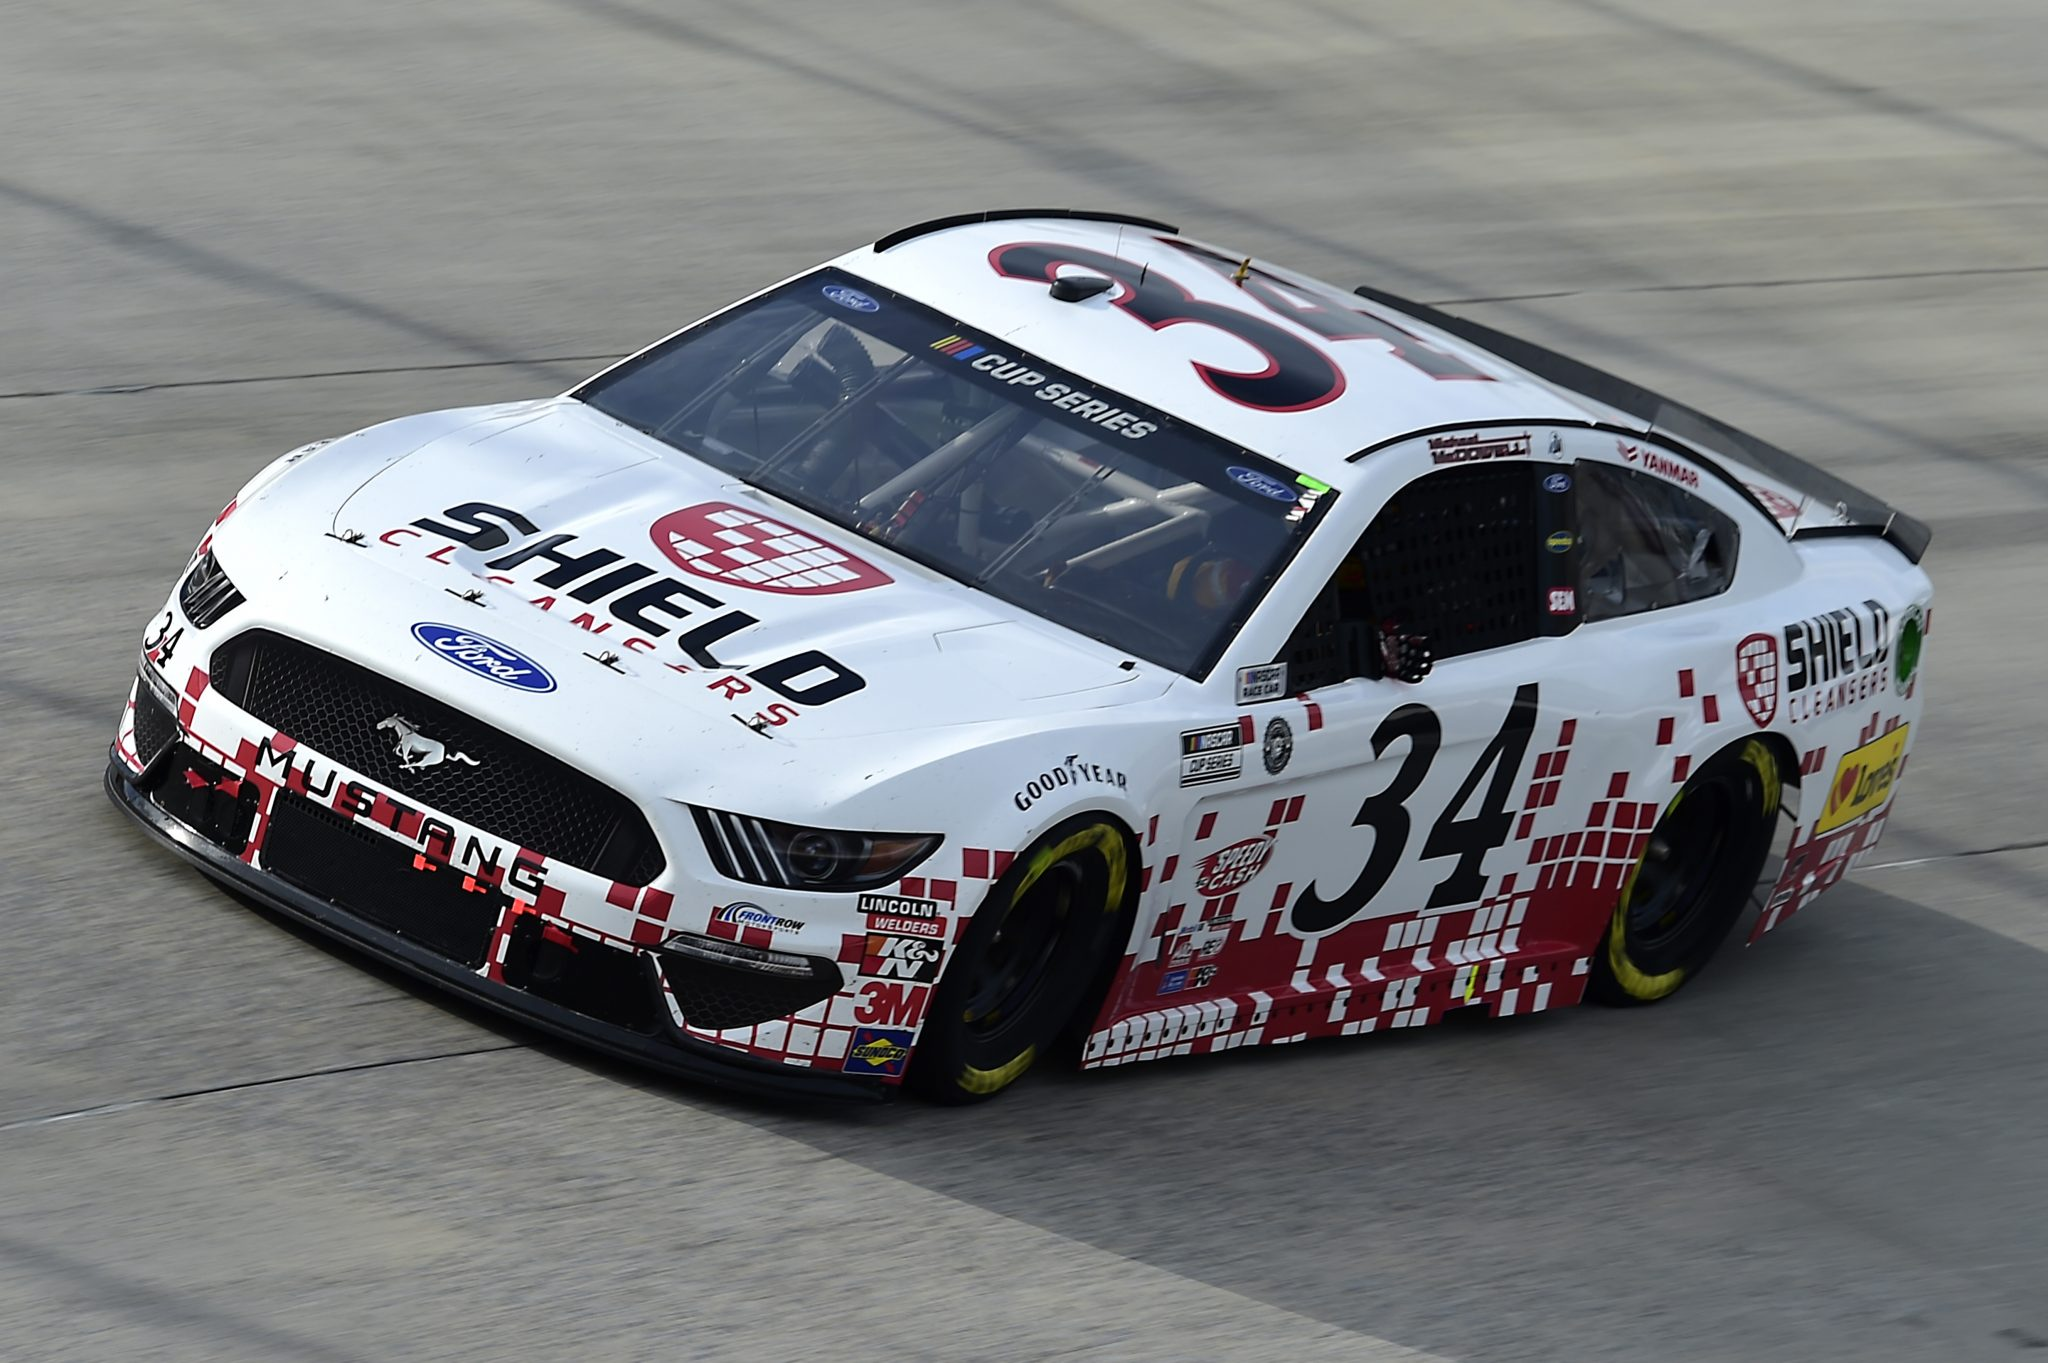 DOVER, DELAWARE - AUGUST 22: Michael McDowell, driver of the #34 Digital Ally Shield Cleansers Ford, drives during the NASCAR Cup Series Drydene 311 at Dover International Speedway on August 22, 2020 in Dover, Delaware. (Photo by Jared C. Tilton/Getty Images) | Getty Images